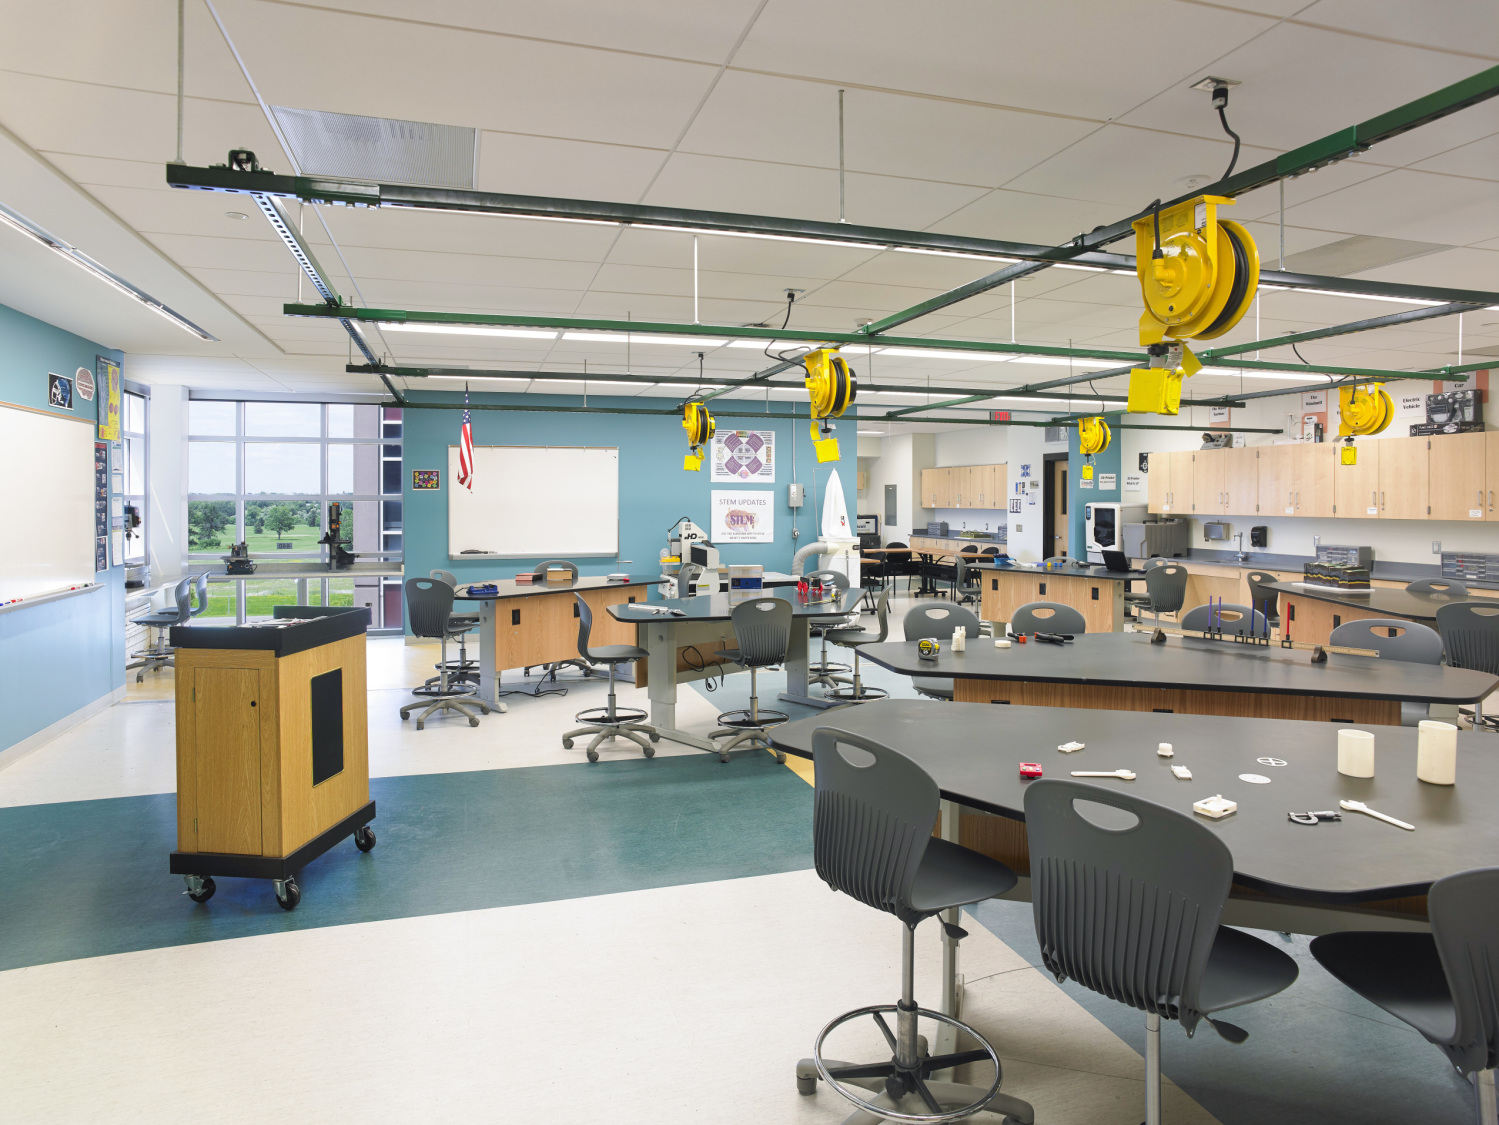 Niagara Falls School District STEM Classrooms and Buildings